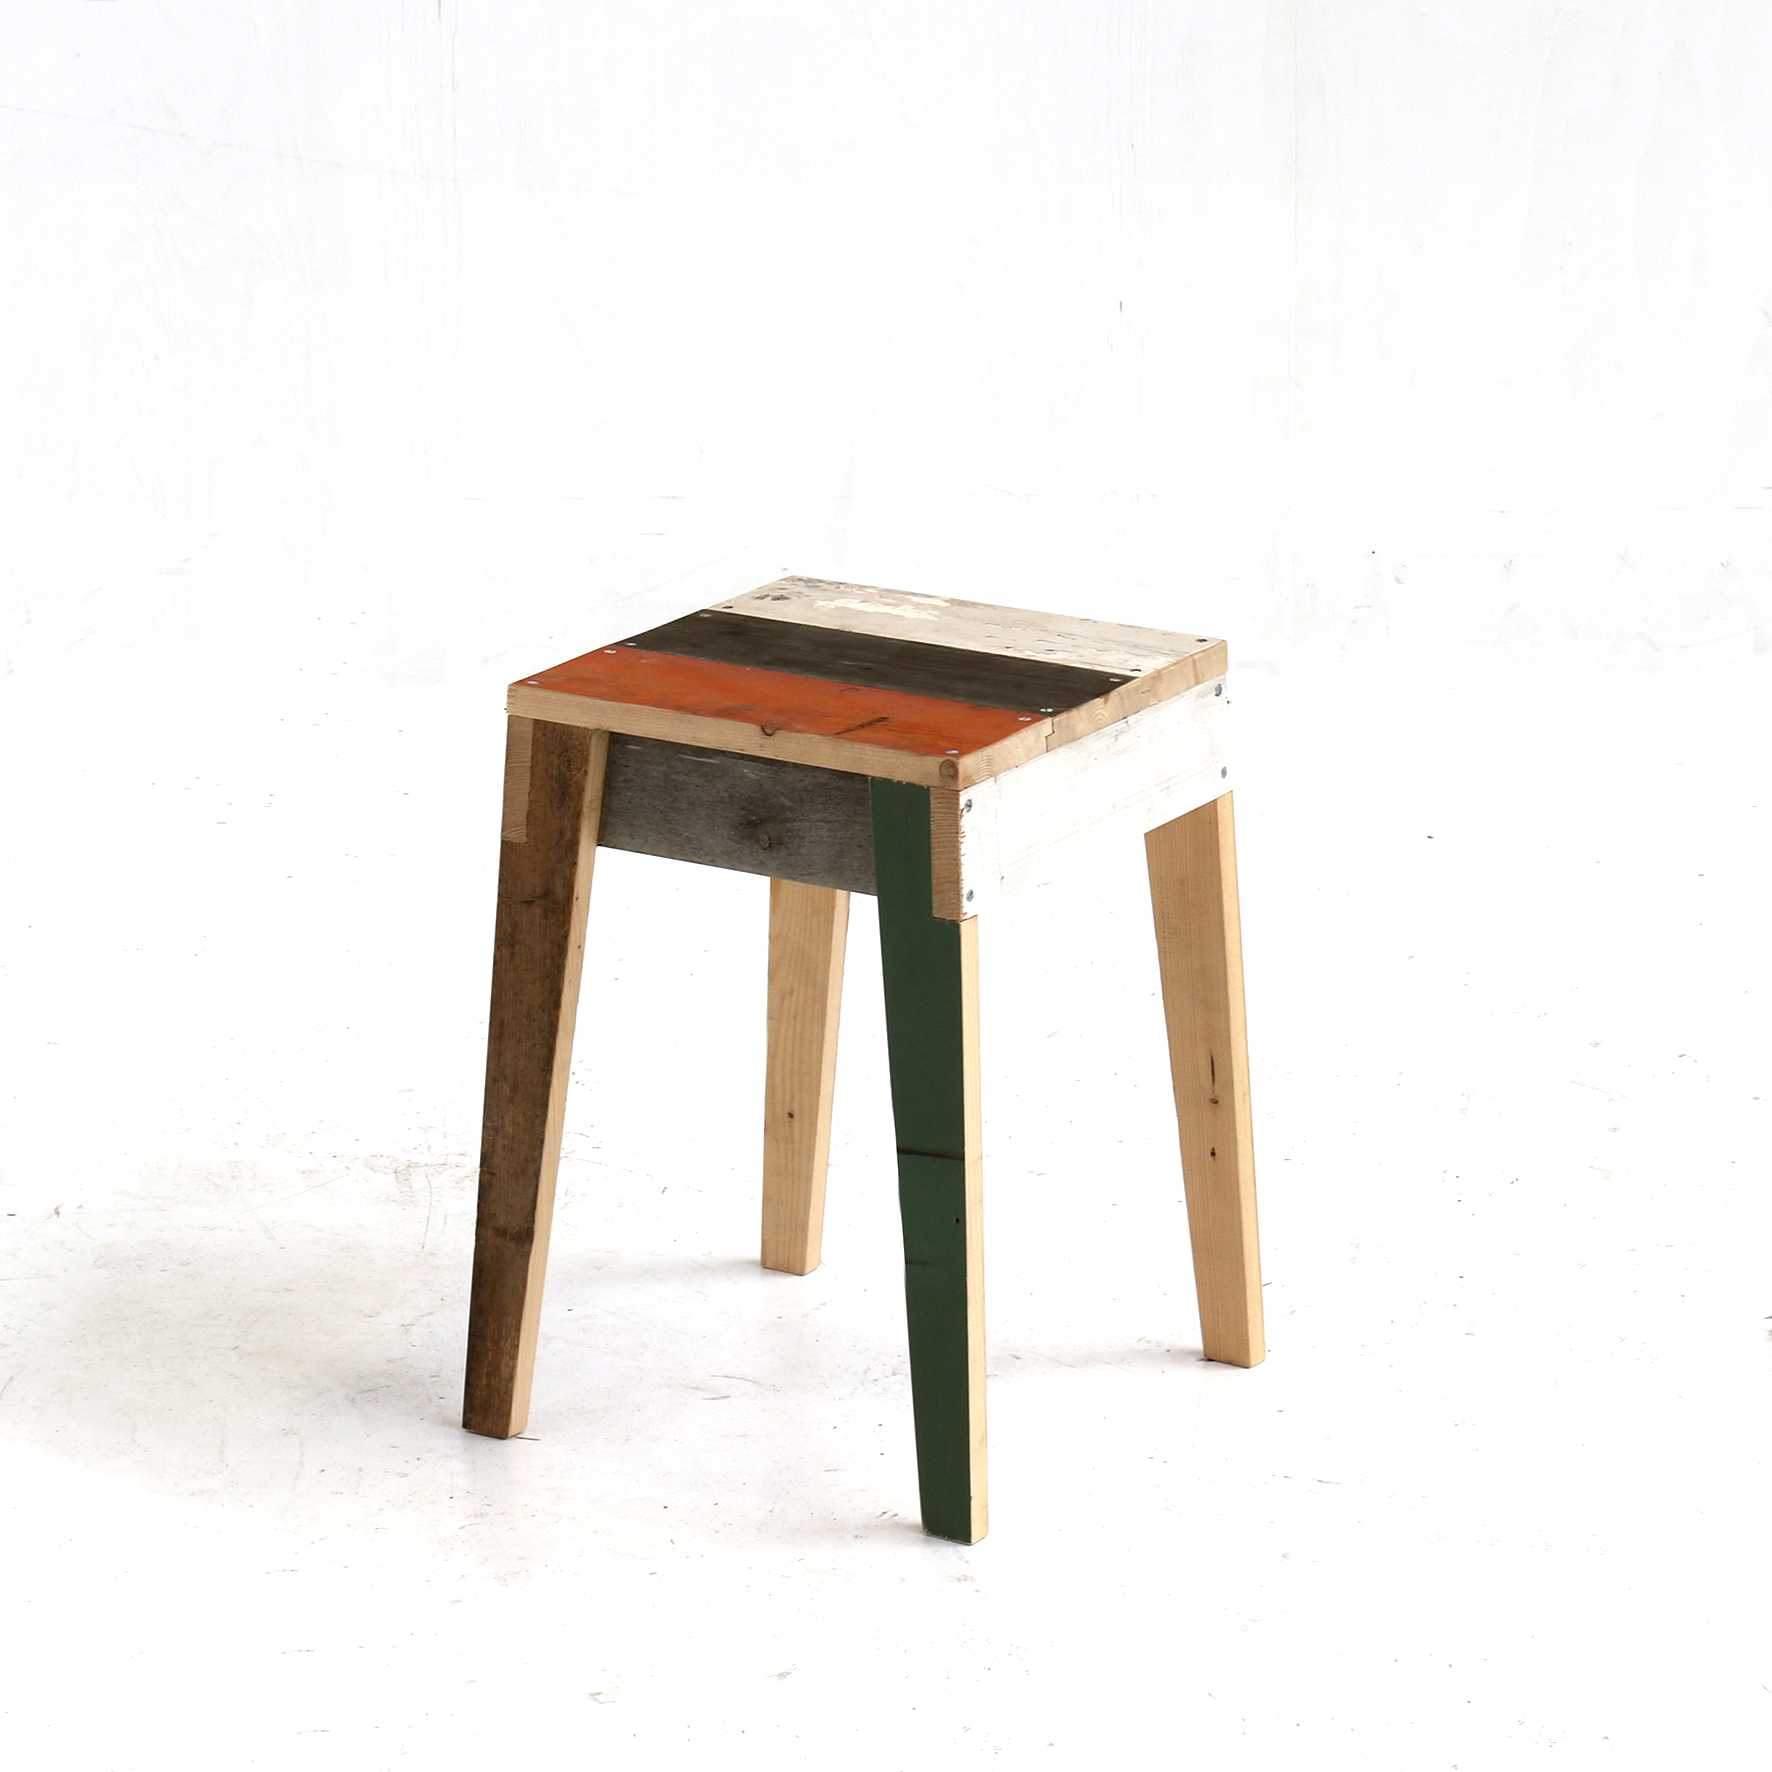 kruk-in-sloophout stool scrapwood